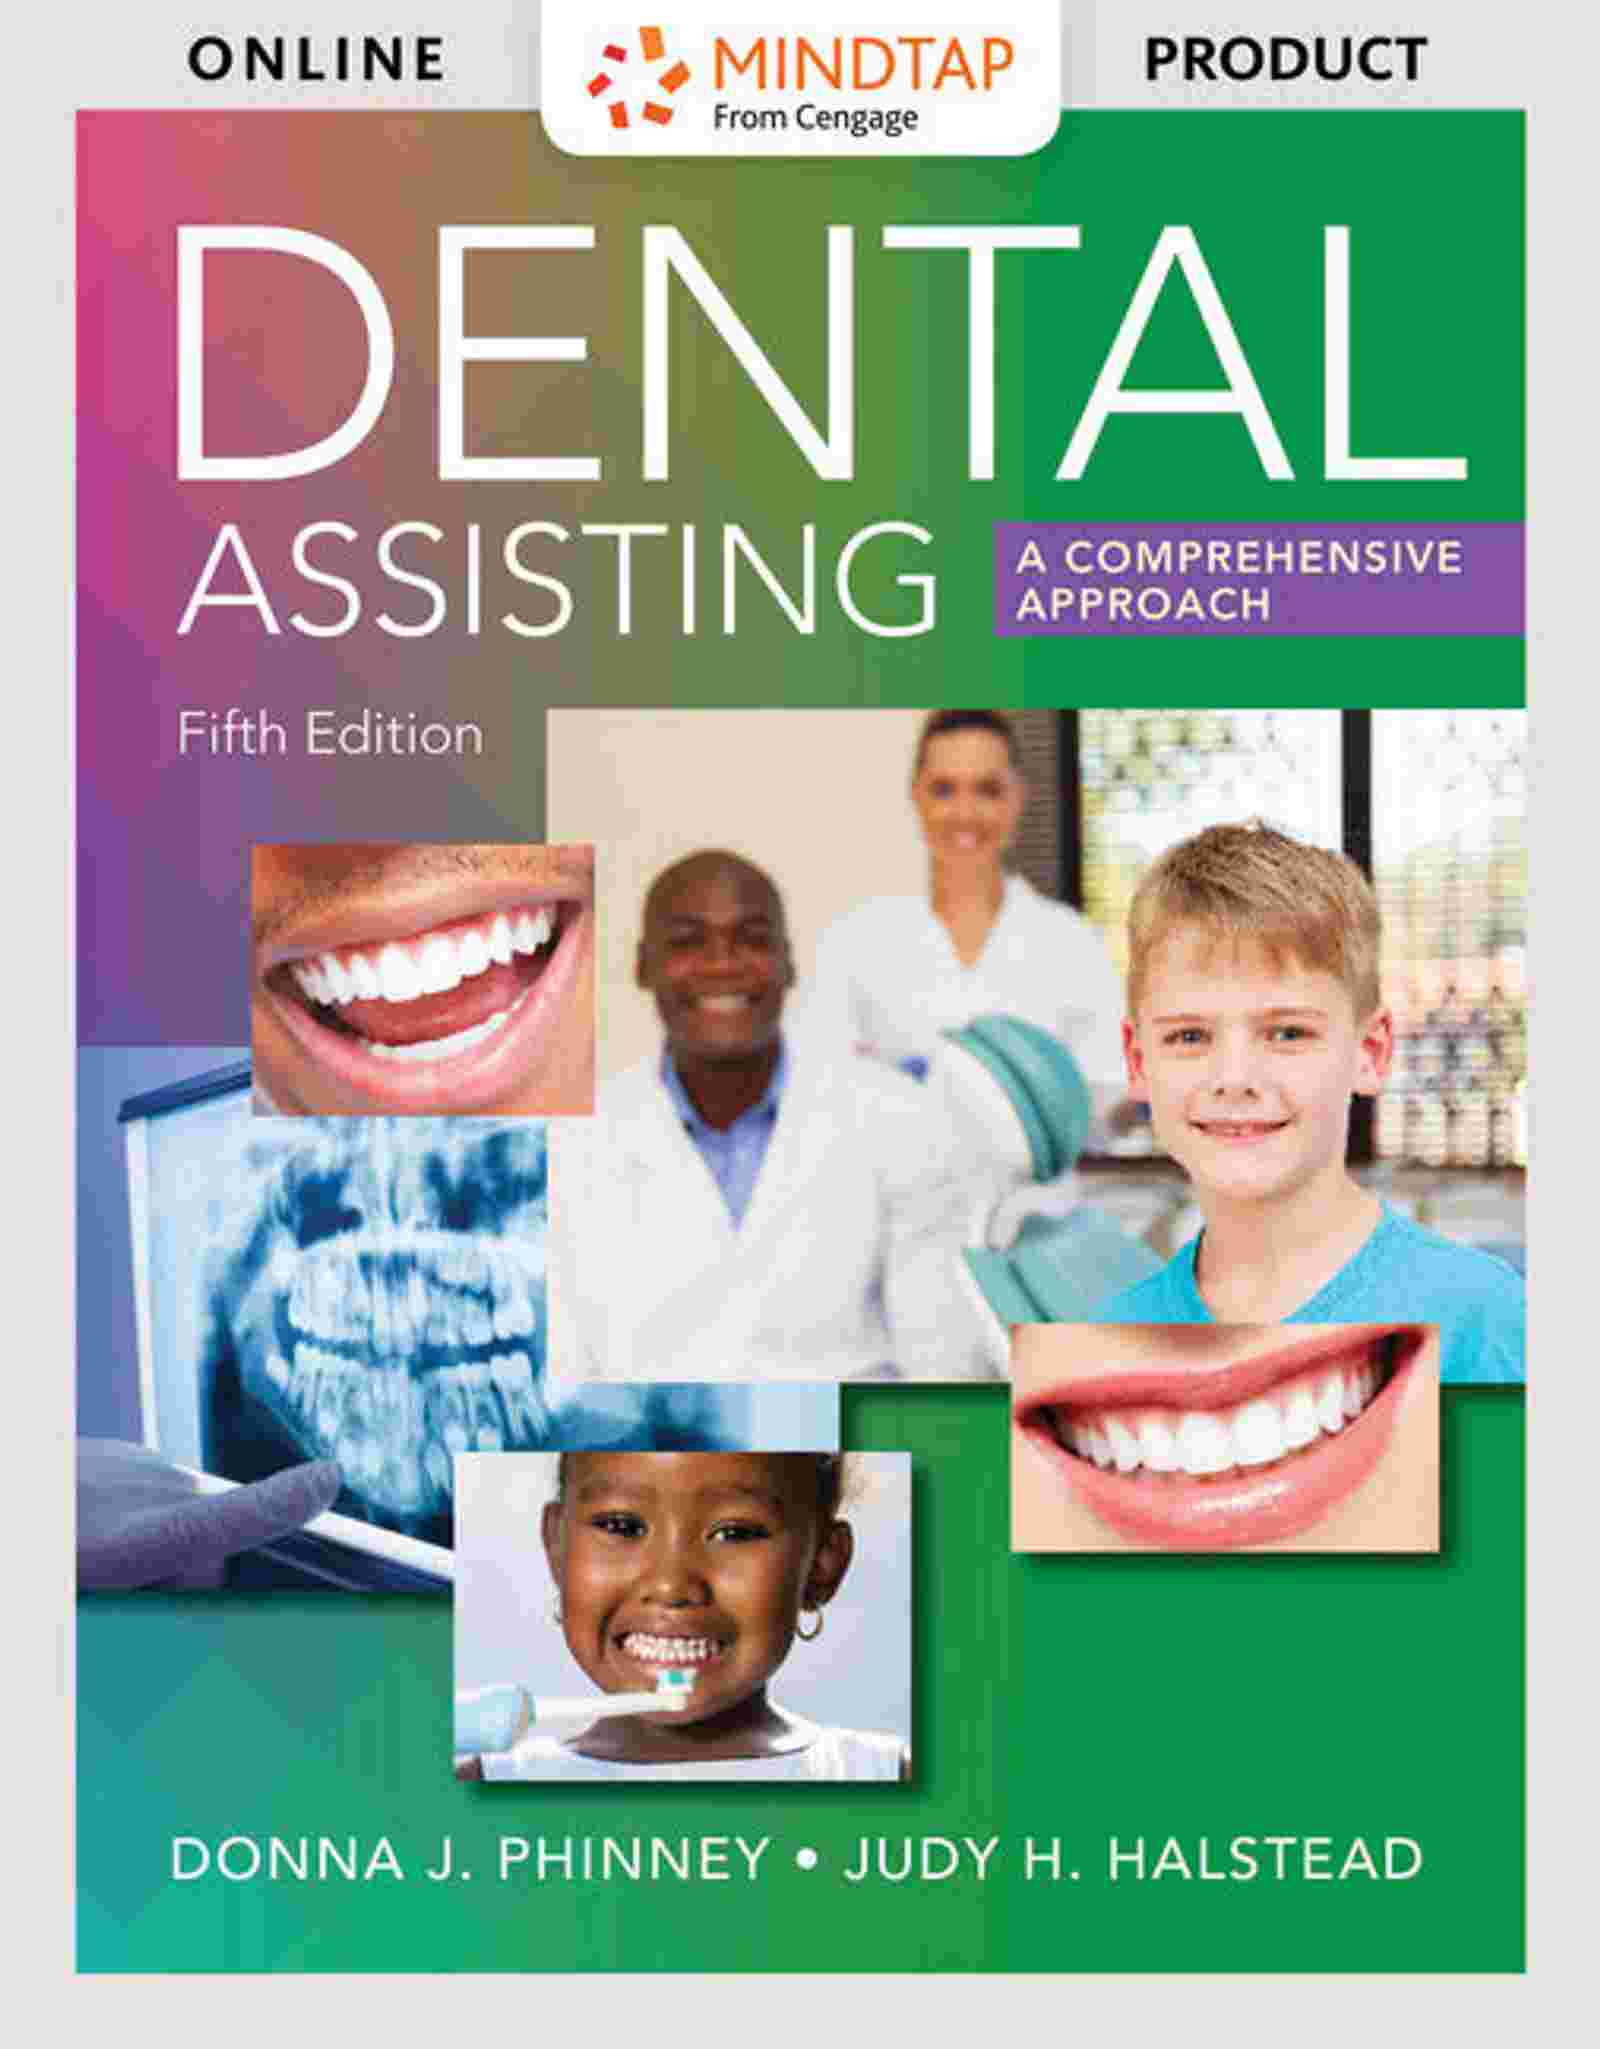 Dental Assisting: A Comprehensive Approach, 5th Edition